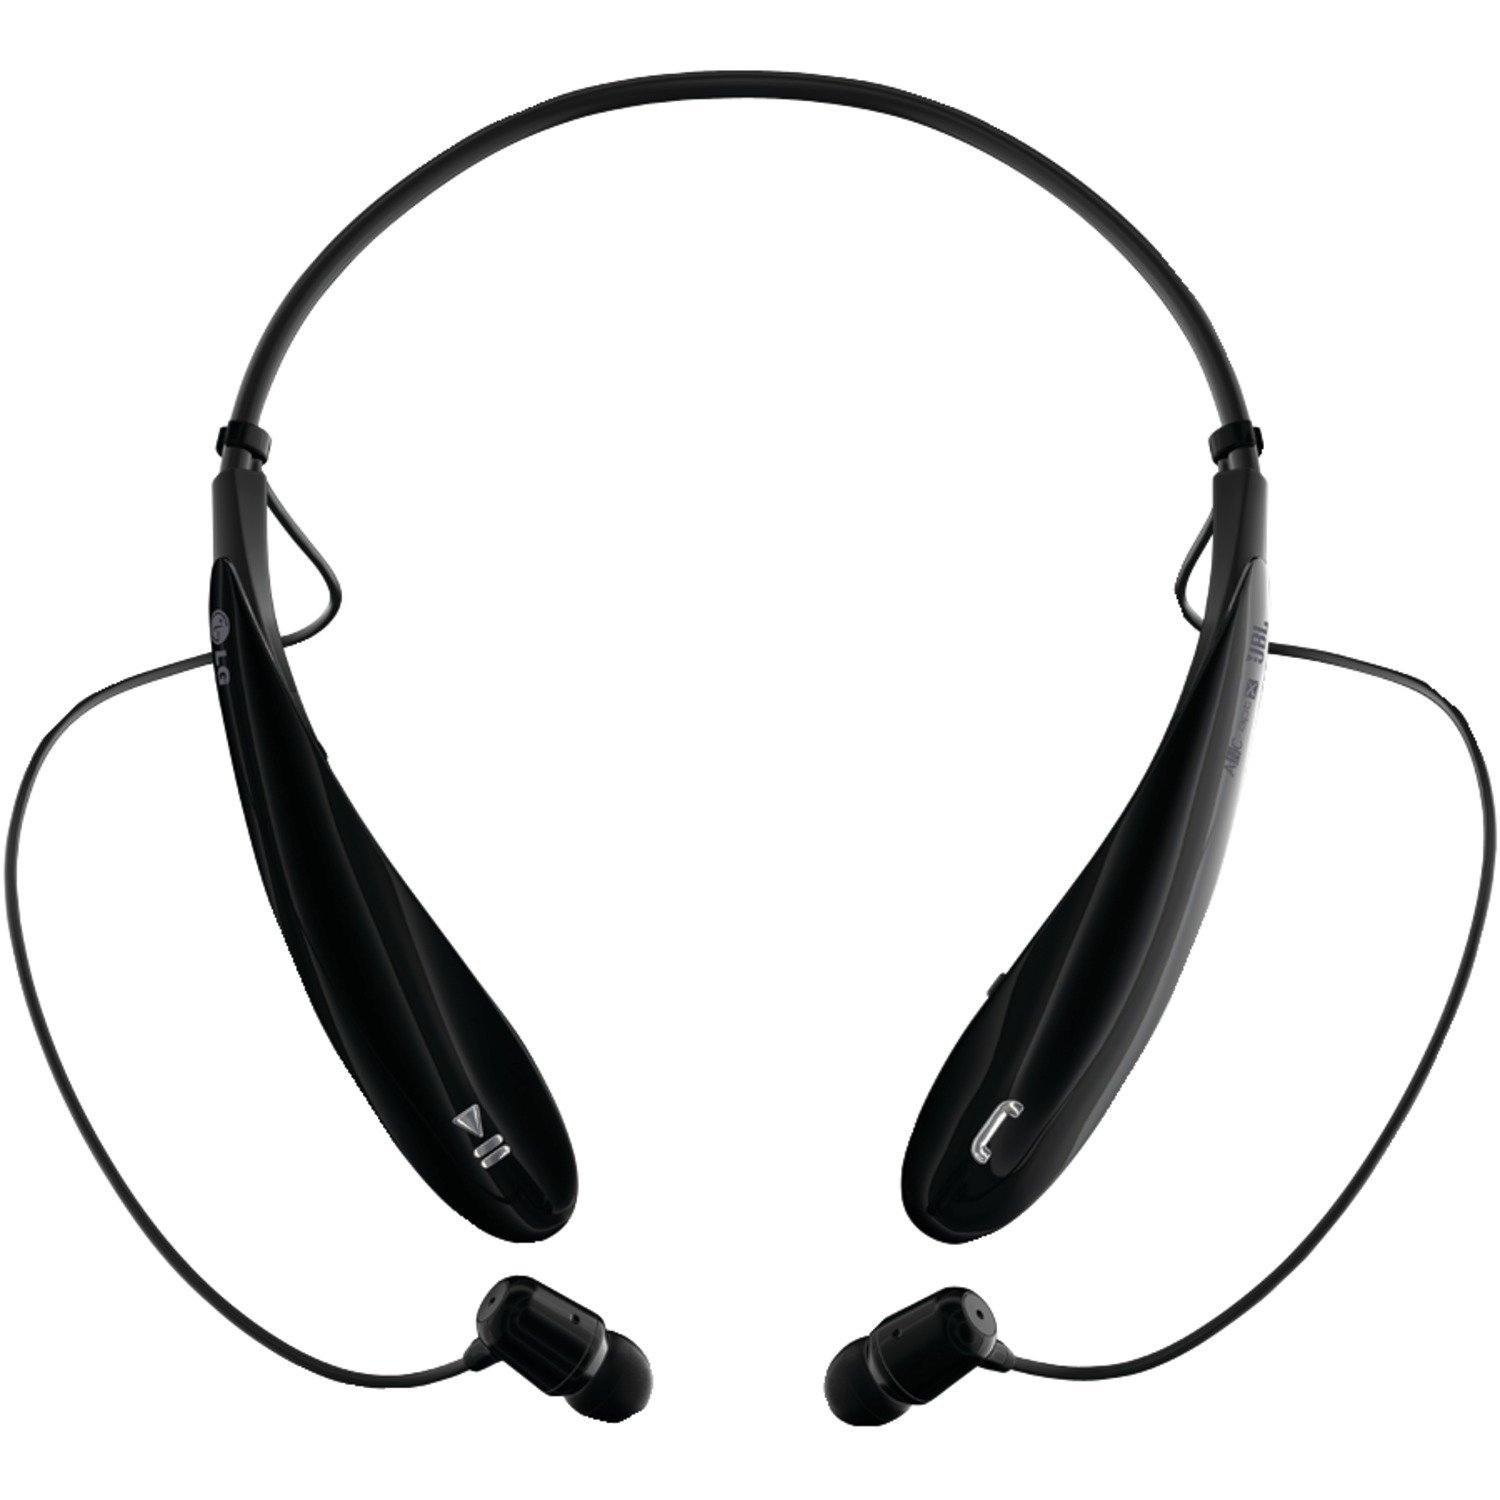 63d286b4d2f LG Electronics Tone Ultra (HBS-800) Bluetooth Stereo Headset - Black  (Certified Refurbished): Amazon.ca: Cell Phones & Accessories